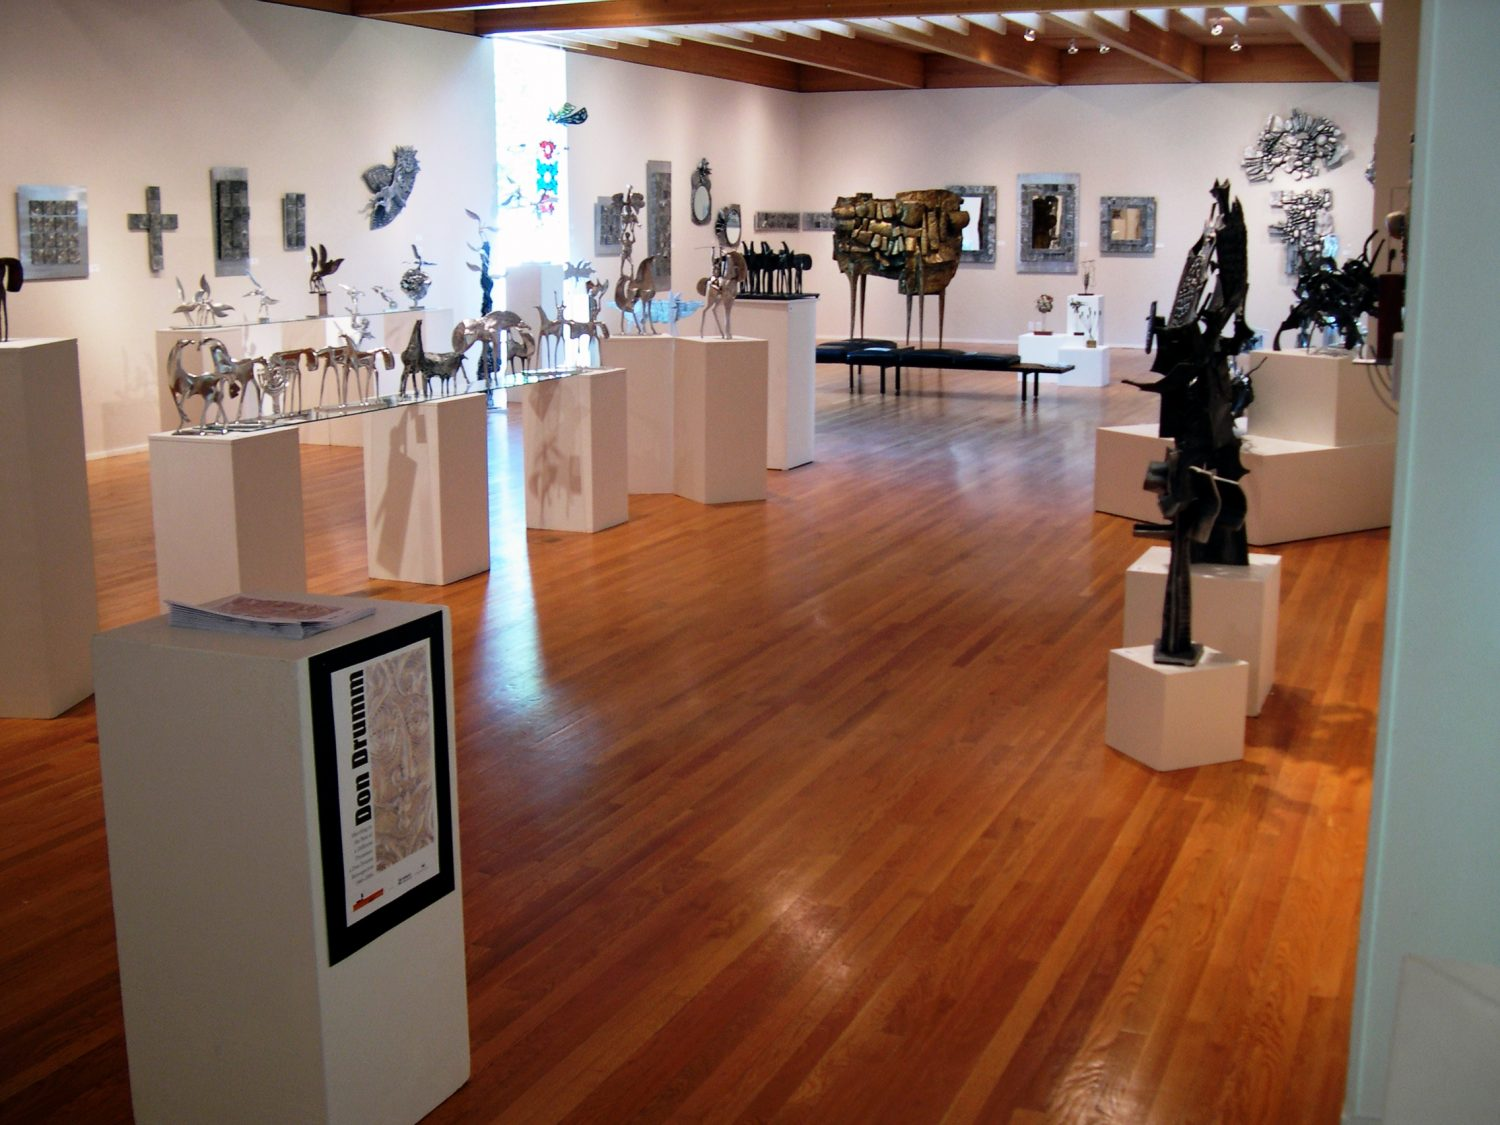 Get Your Creative On at Mansfield Art Center